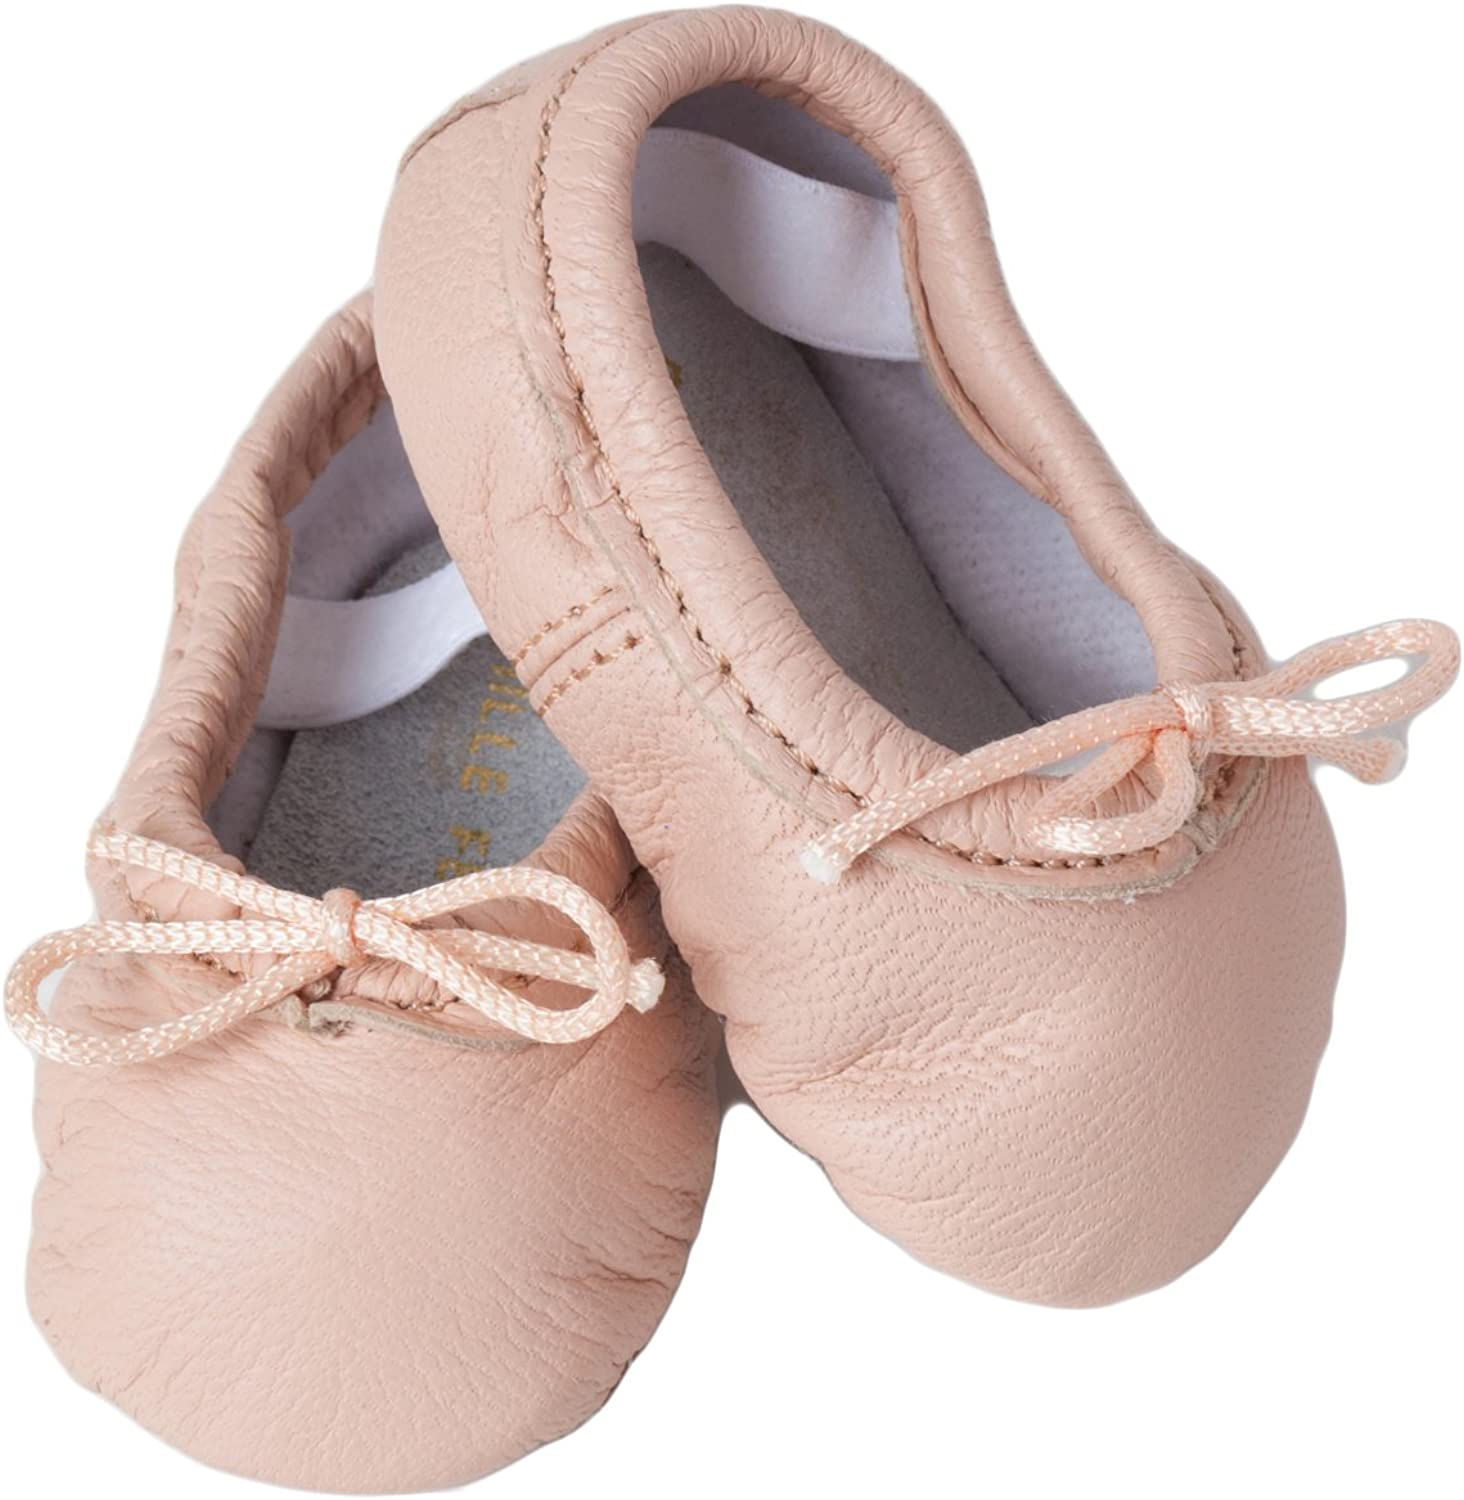 best selling save up to 80% lower price with Amazon.com: Baby Ballet Slippers (infant/toddler) - Prima Pink ...